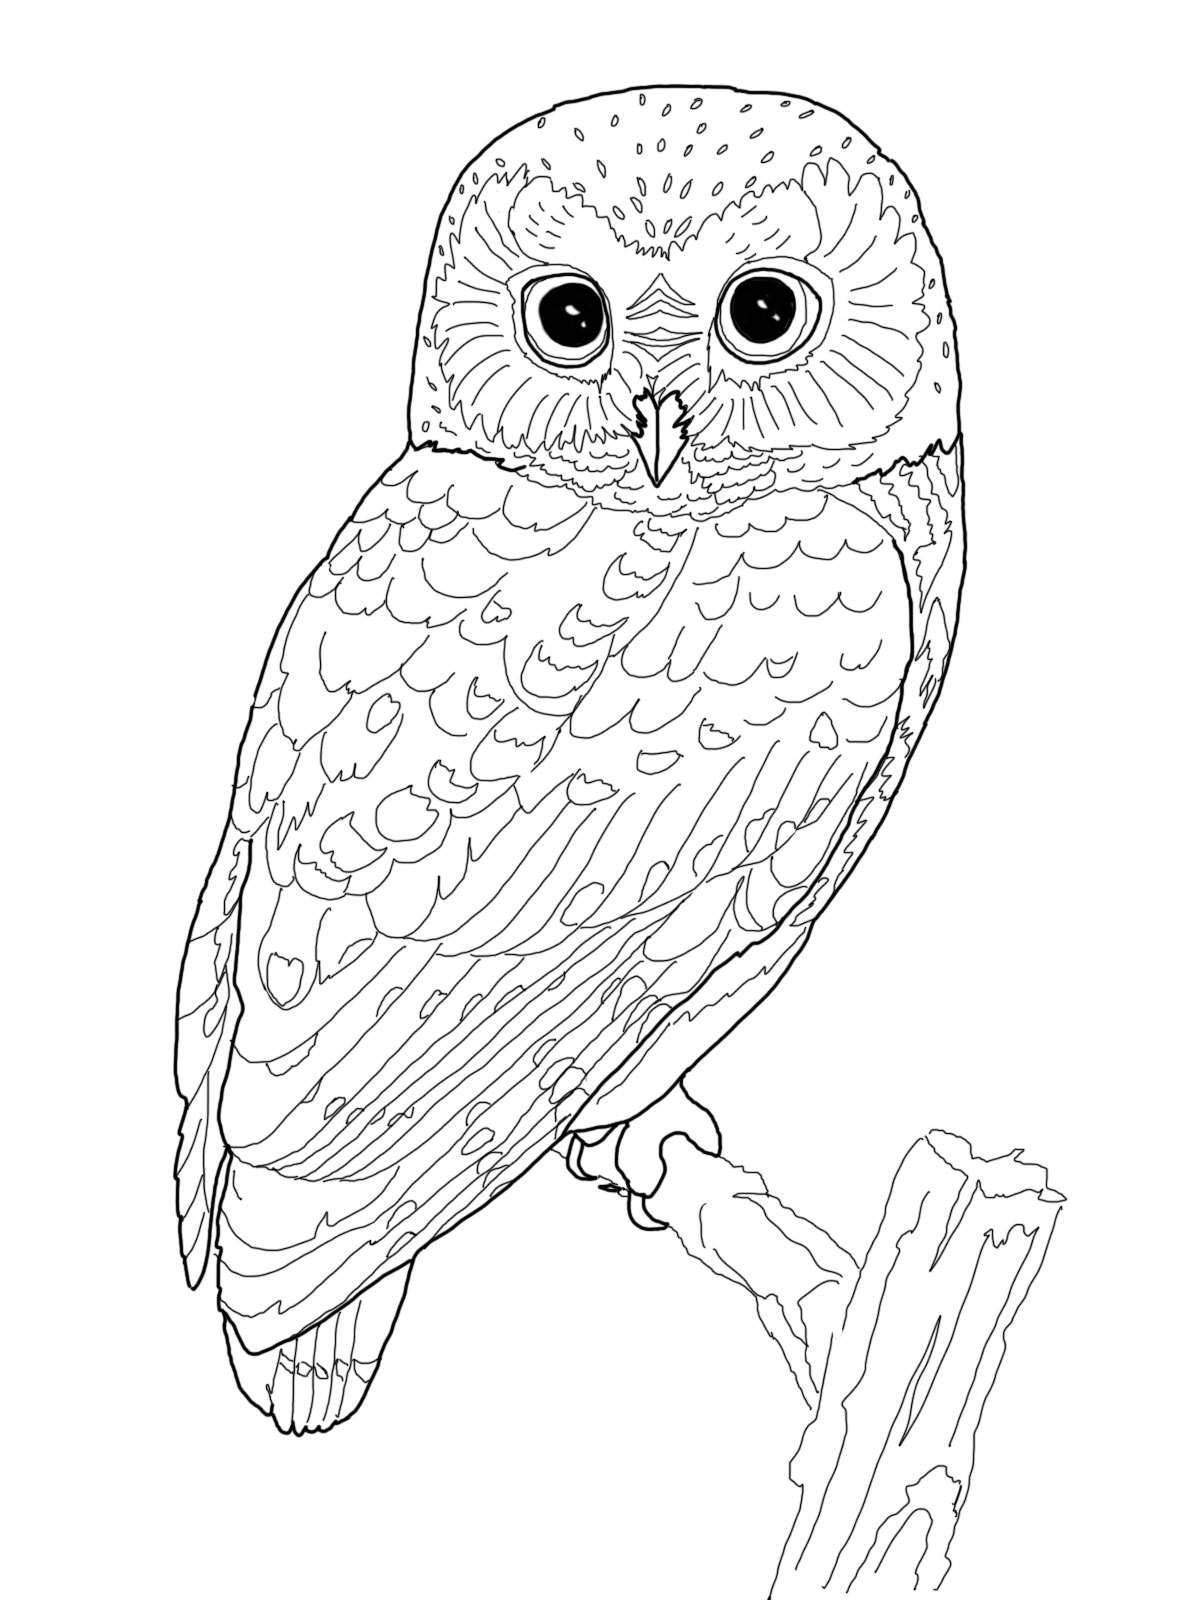 Owl coloring page printable